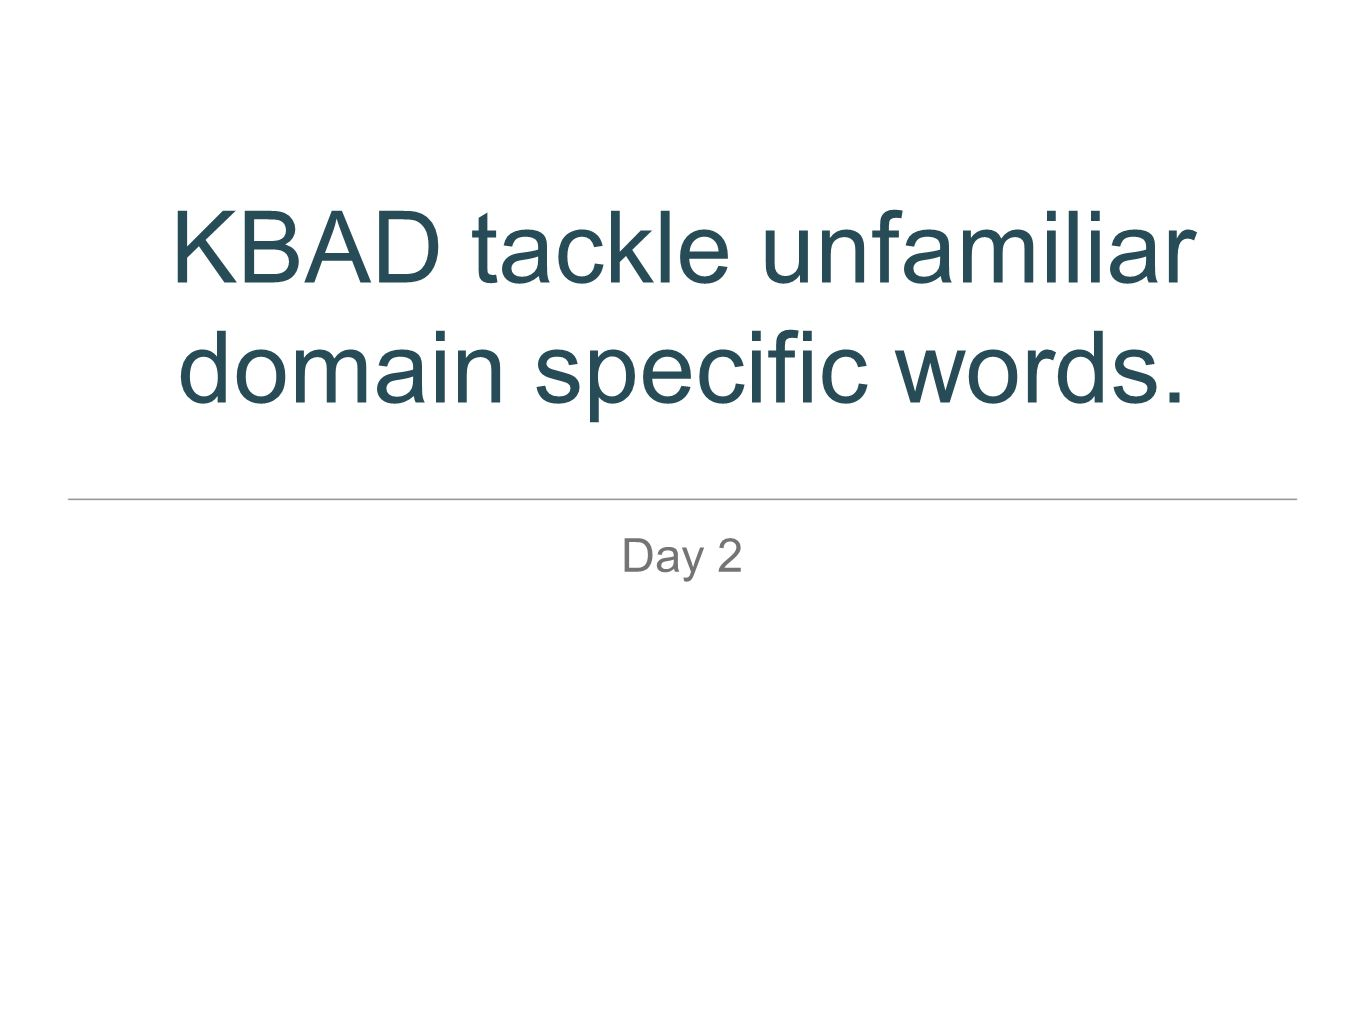 KBAD tackle unfamiliar domain specific words.